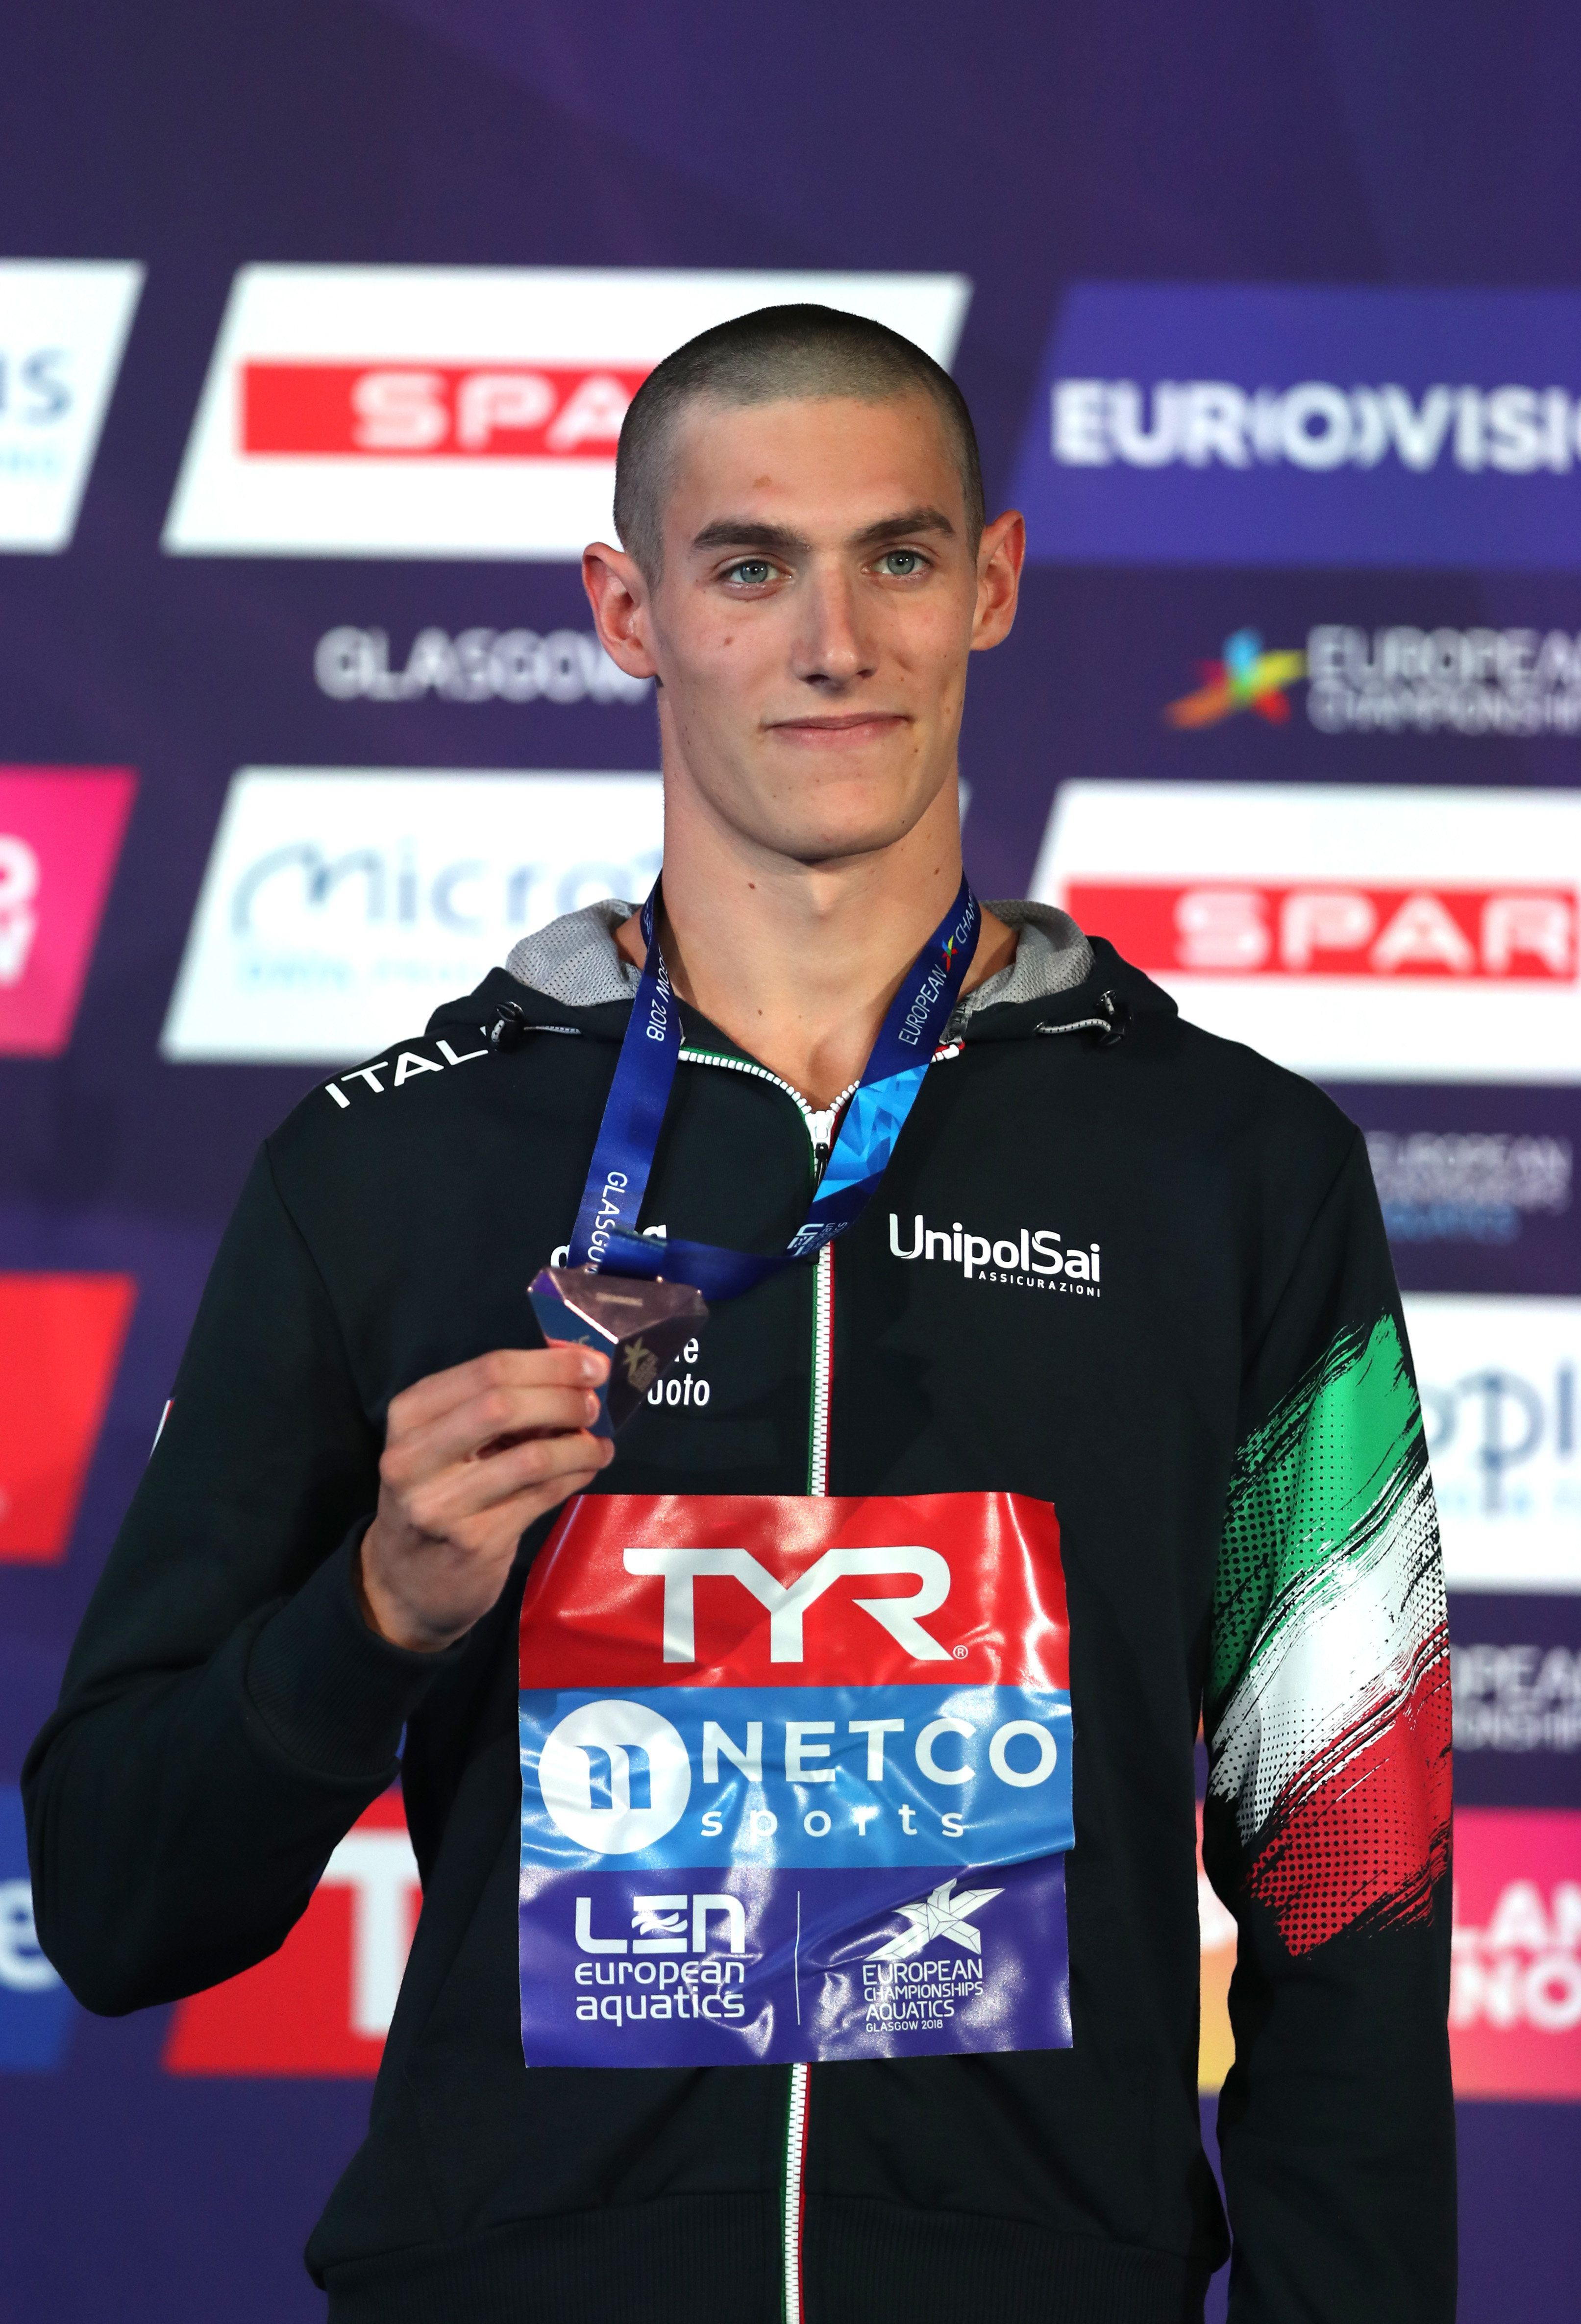 GLASGOW, SCOTLAND - AUGUST 09: Andrea Vergani of Italy poses with his Bronze medal after coming third in the Men's 50m Freestyle Final during the swimming on Day eight of the European Championships Glasgow 2018 at Tollcross International Swimming Centre on August 9, 2018 in Glasgow, Scotland.  This event forms part of the first multi-sport European Championships.  (Photo by Ian MacNicol/Getty Images)